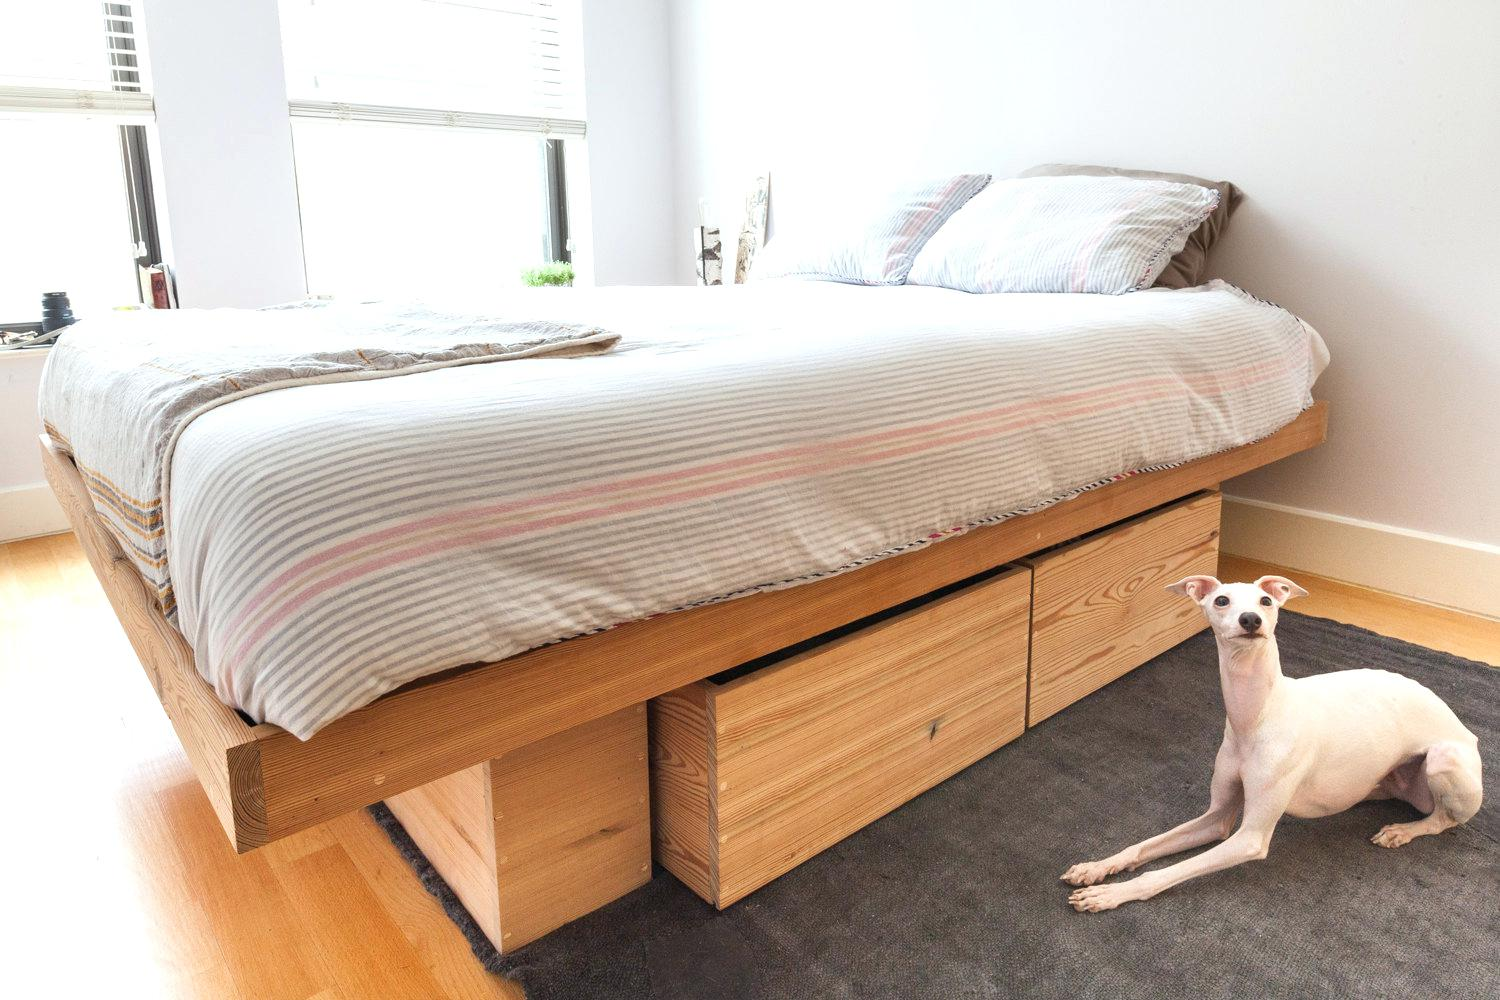 Bed Frame And Storage